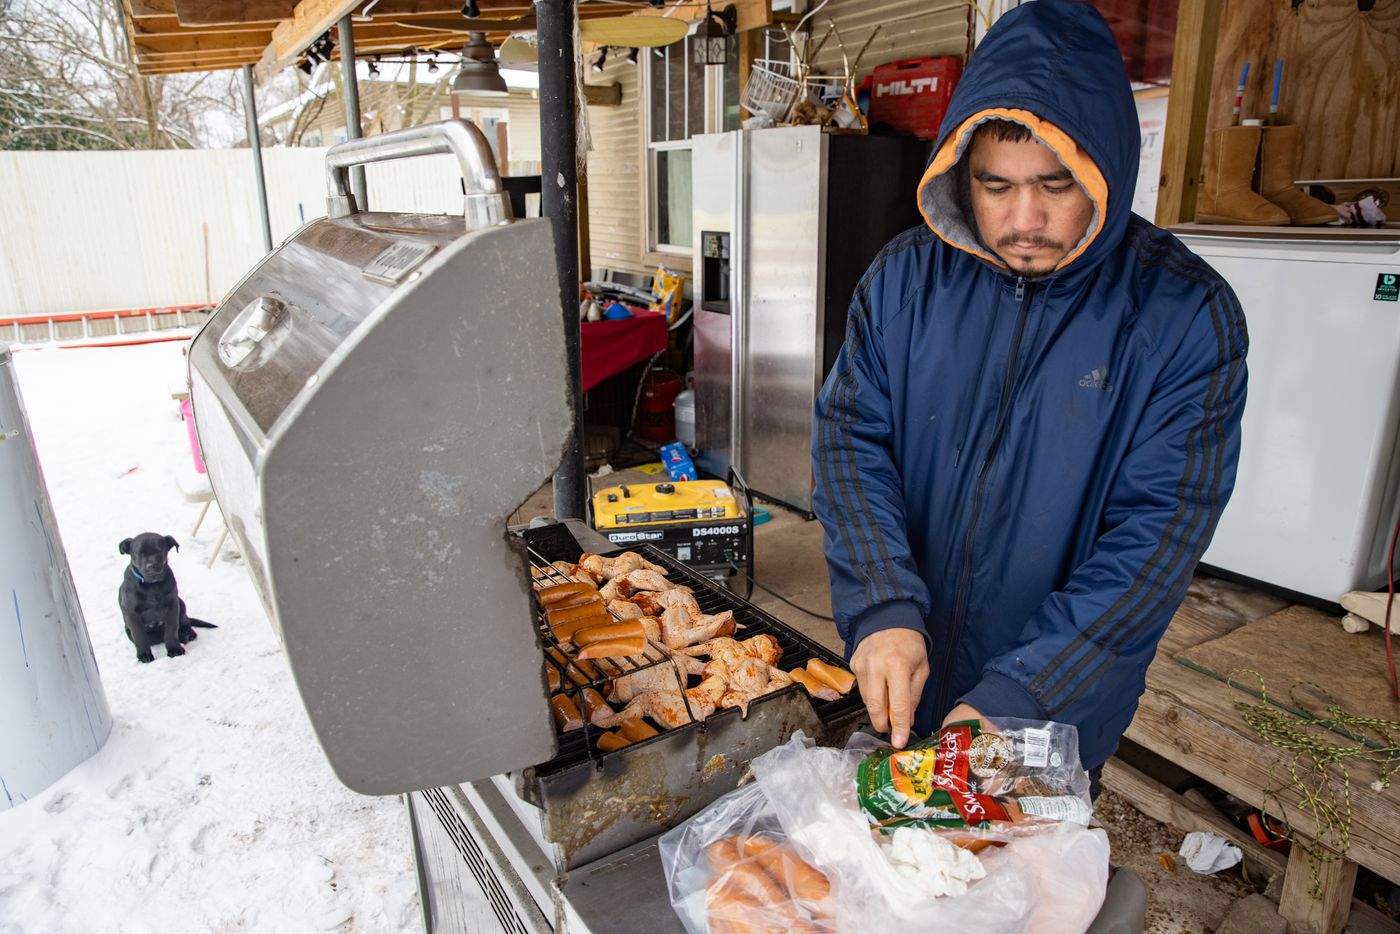 Franco Pompa grills chicken in his backyard at his East Dallas home on Wednesday, Feb. 17, 2021. One of the generators is also being used to power neighbor Leonel Solis' home through a long extension cord.